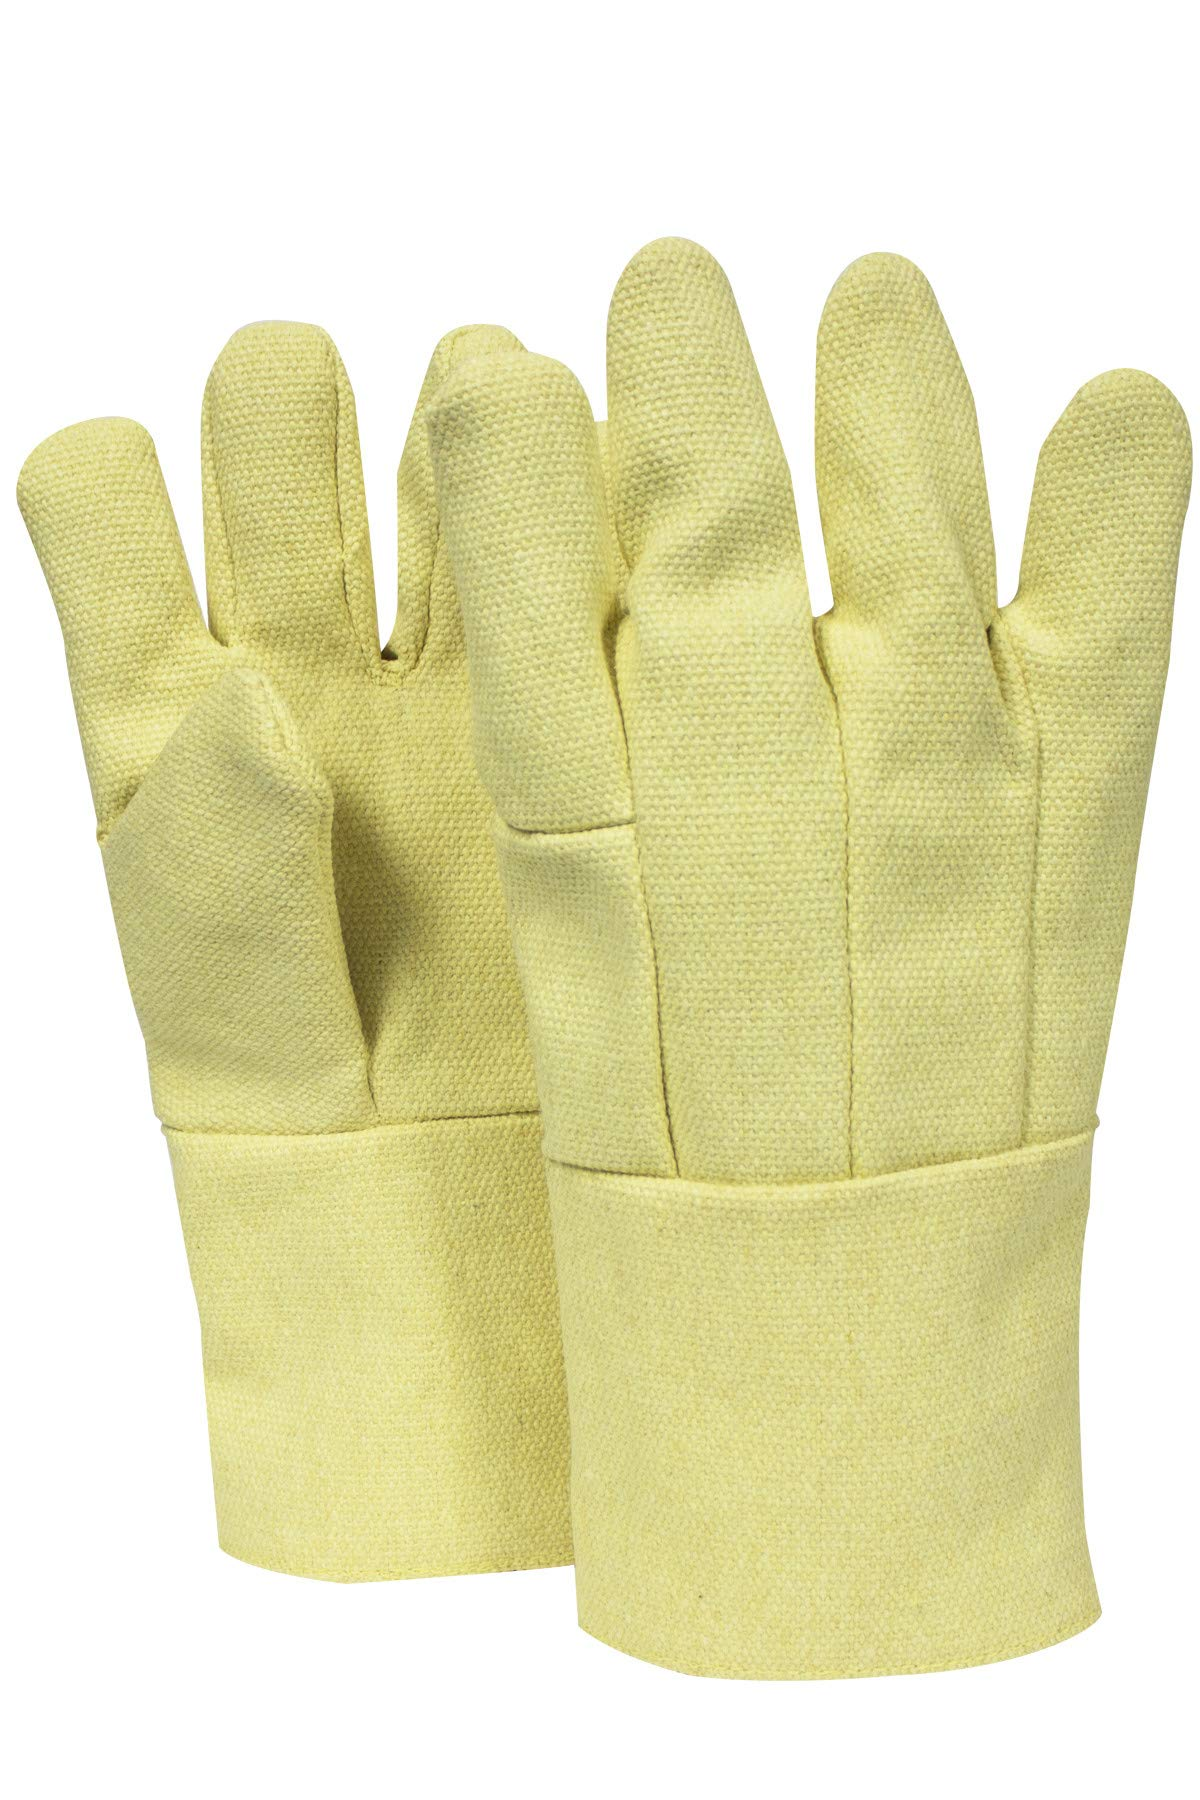 National Safety Apparel G64TCSR0814 Thermobest Glove with Thermobest Cuff, 22 oz, Large, Yellow